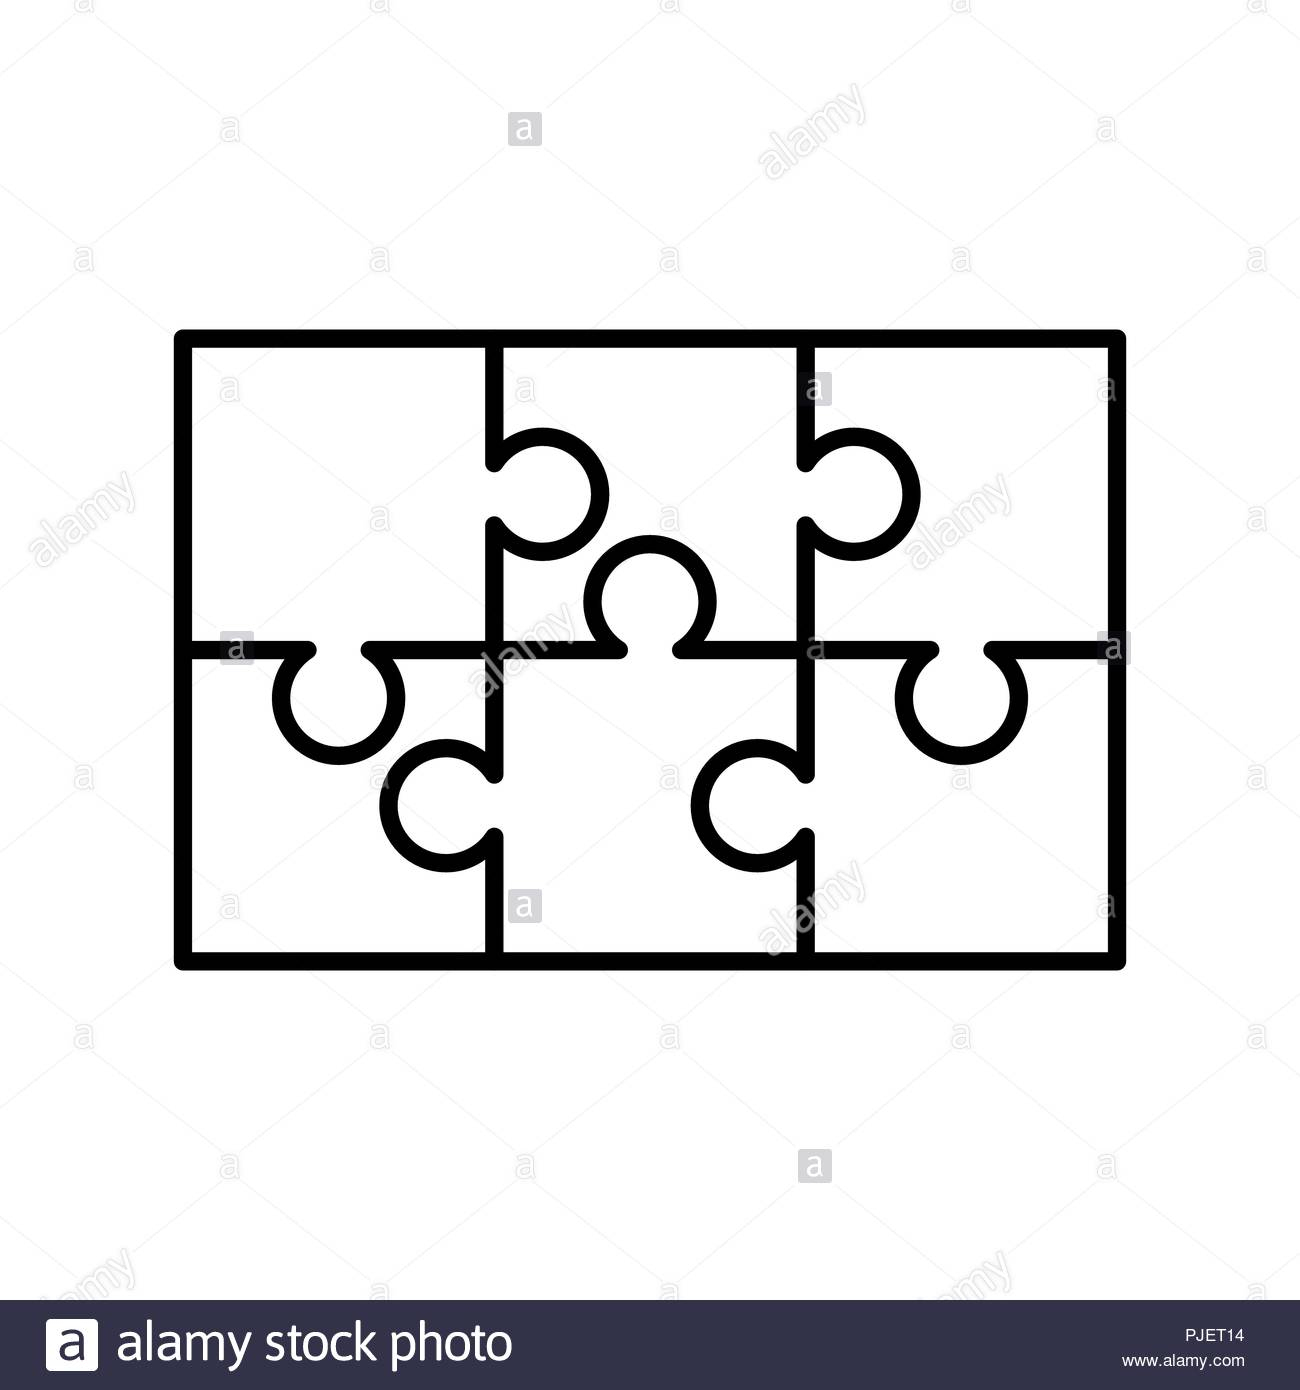 6 White Puzzles Pieces Arranged In A Rectangle Shape. Jigsaw Puzzle - Print Jigsaw Puzzle